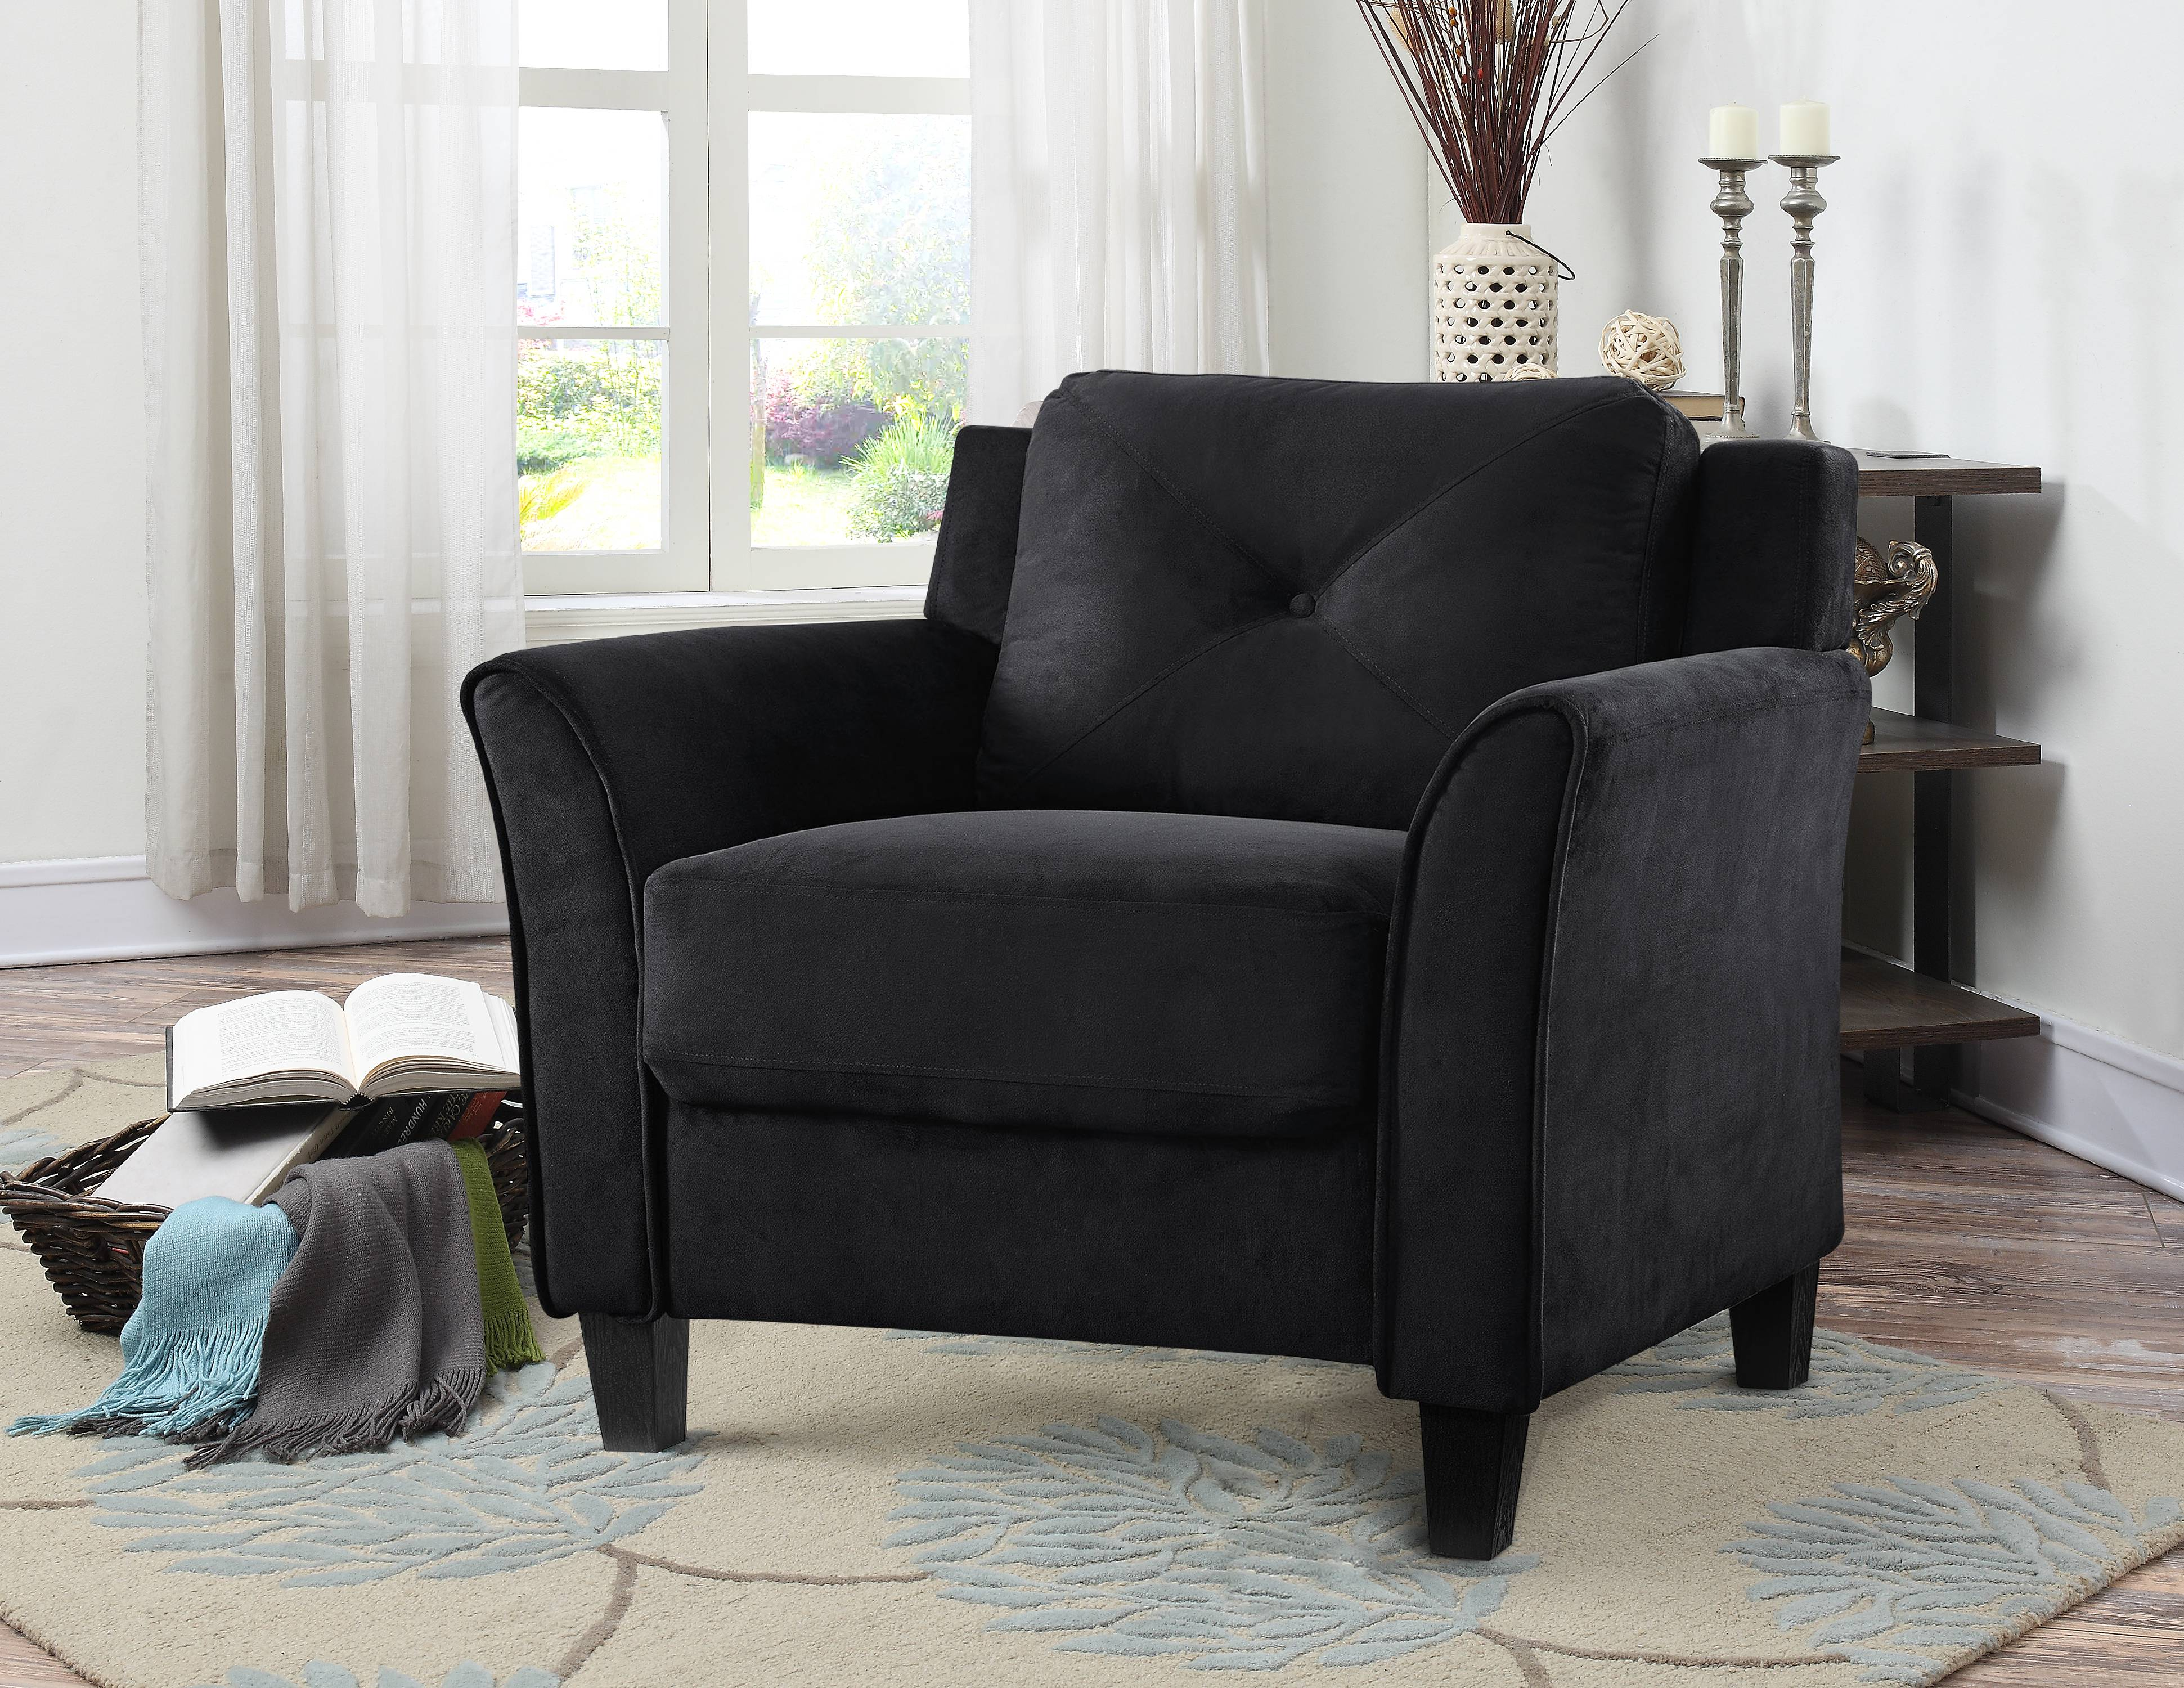 armchairs living room furniture